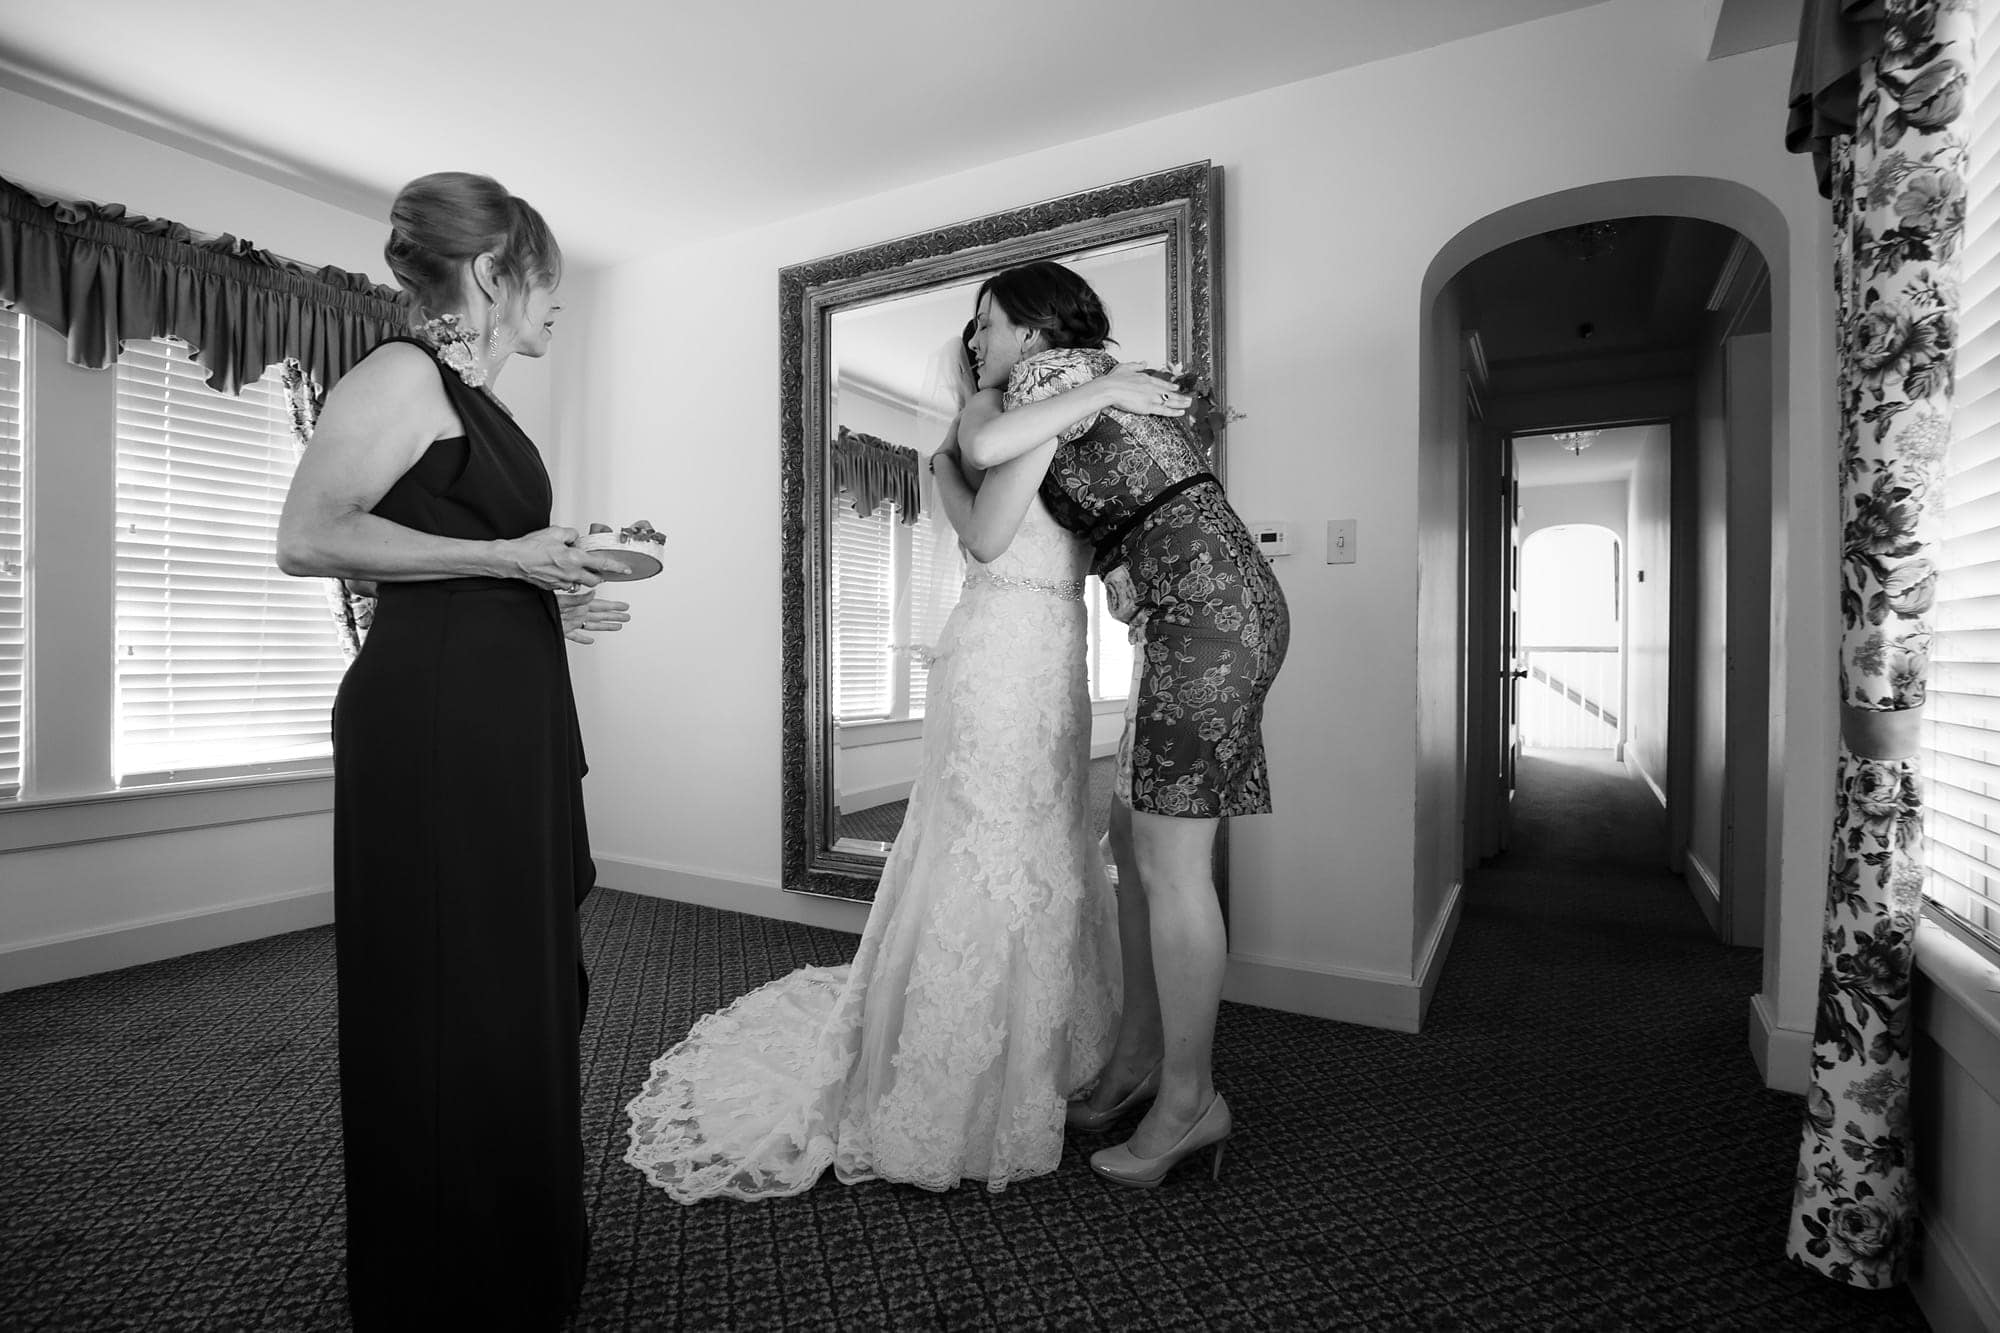 Gina hugs a friend in the bridal room before her wedding with Blake